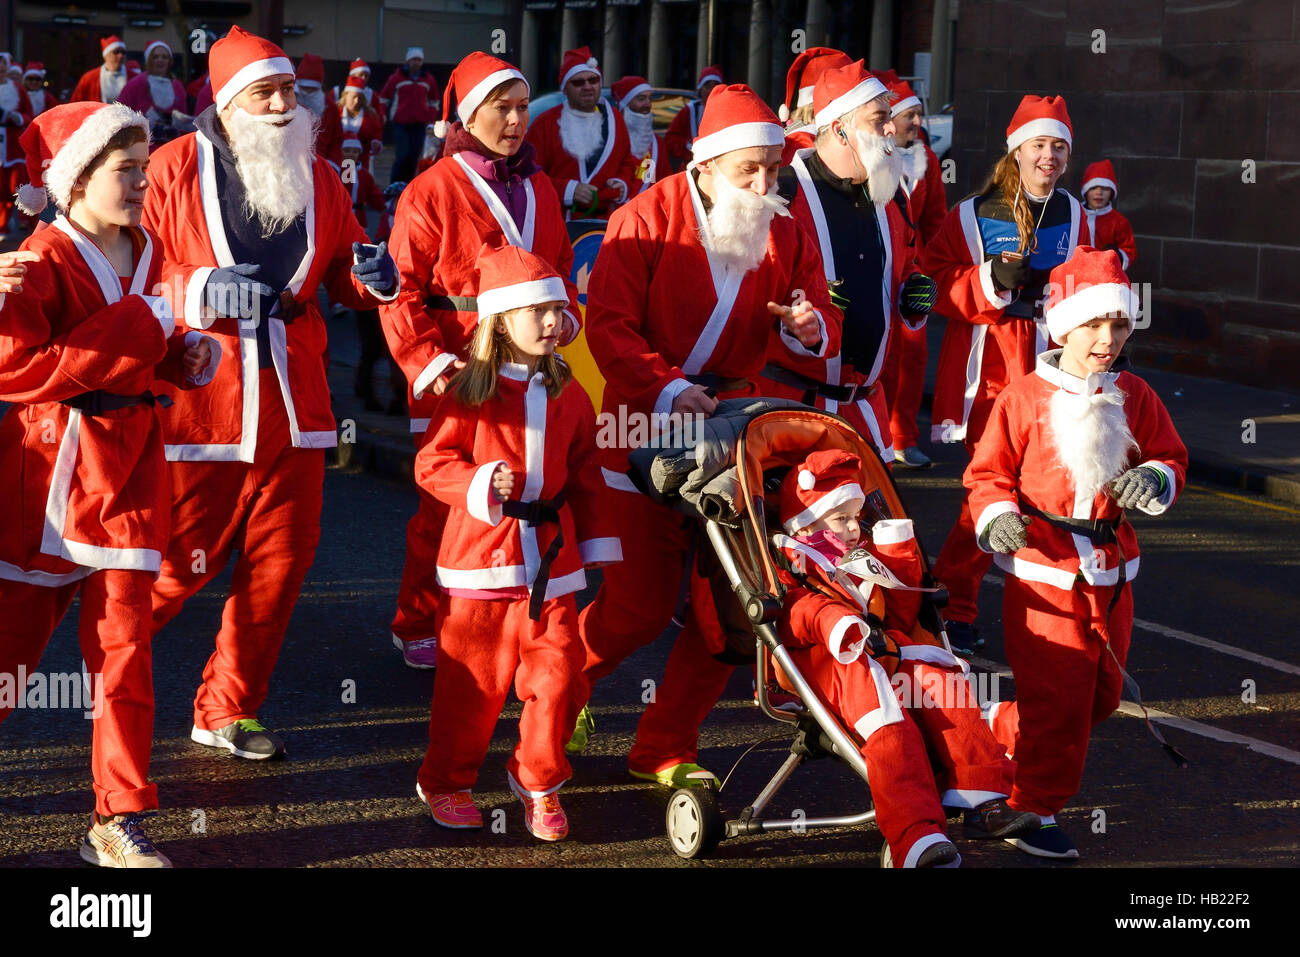 Chester, UK. 4th December 2016. The annual charity santa dash through the city centre streets. Credit: Andrew Paterson/ - Stock Image